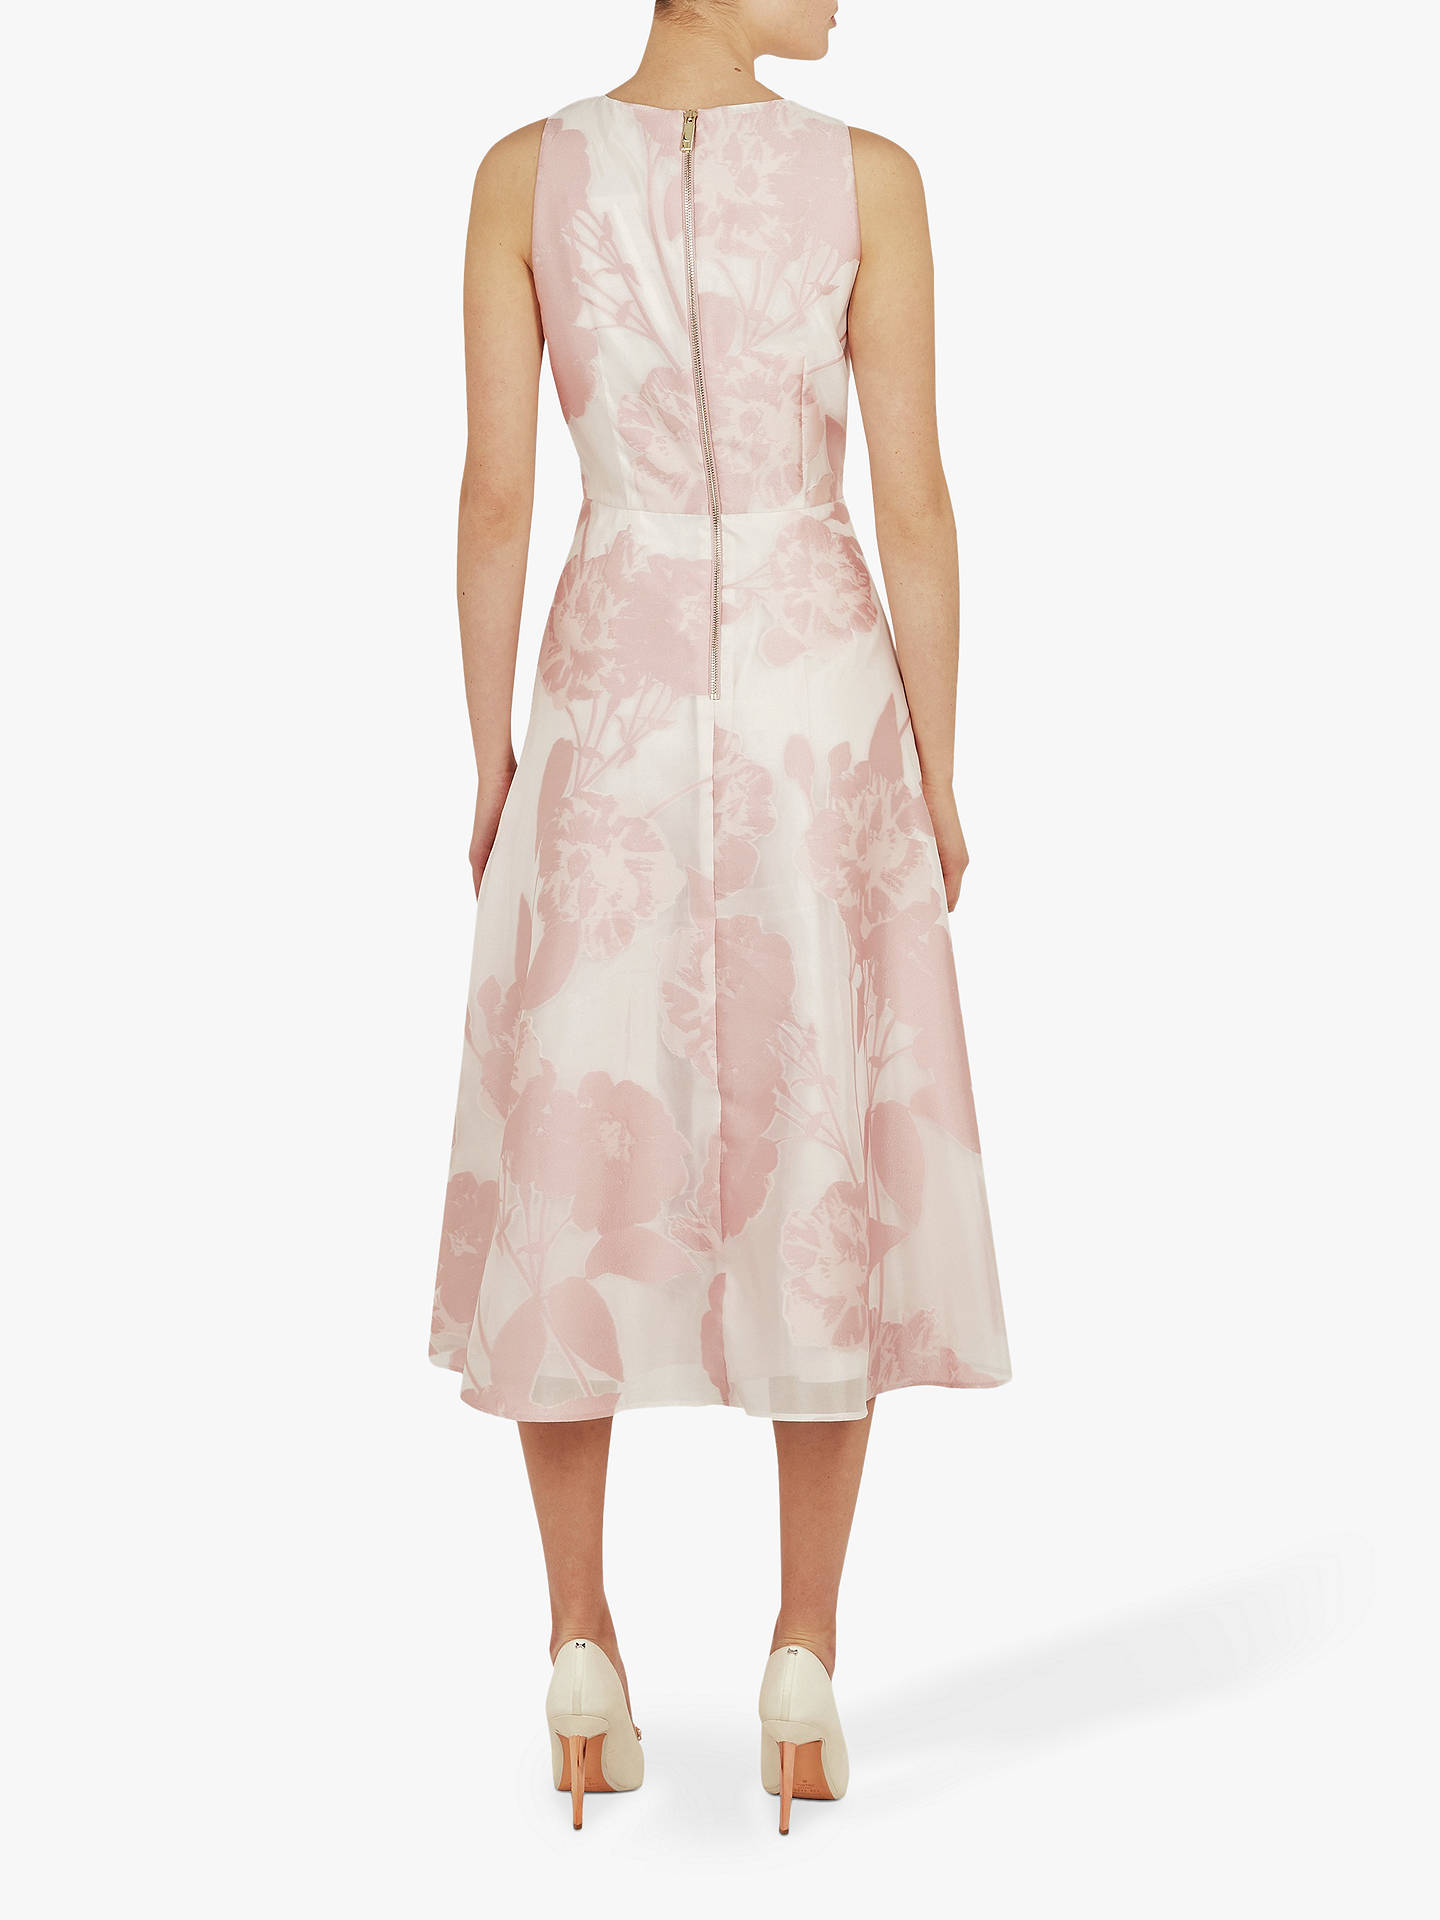 c70b346c693c ... Buy Ted Baker Wylieh Floral Jacquard Midi Dress, Light Pink, L Online  at johnlewis ...